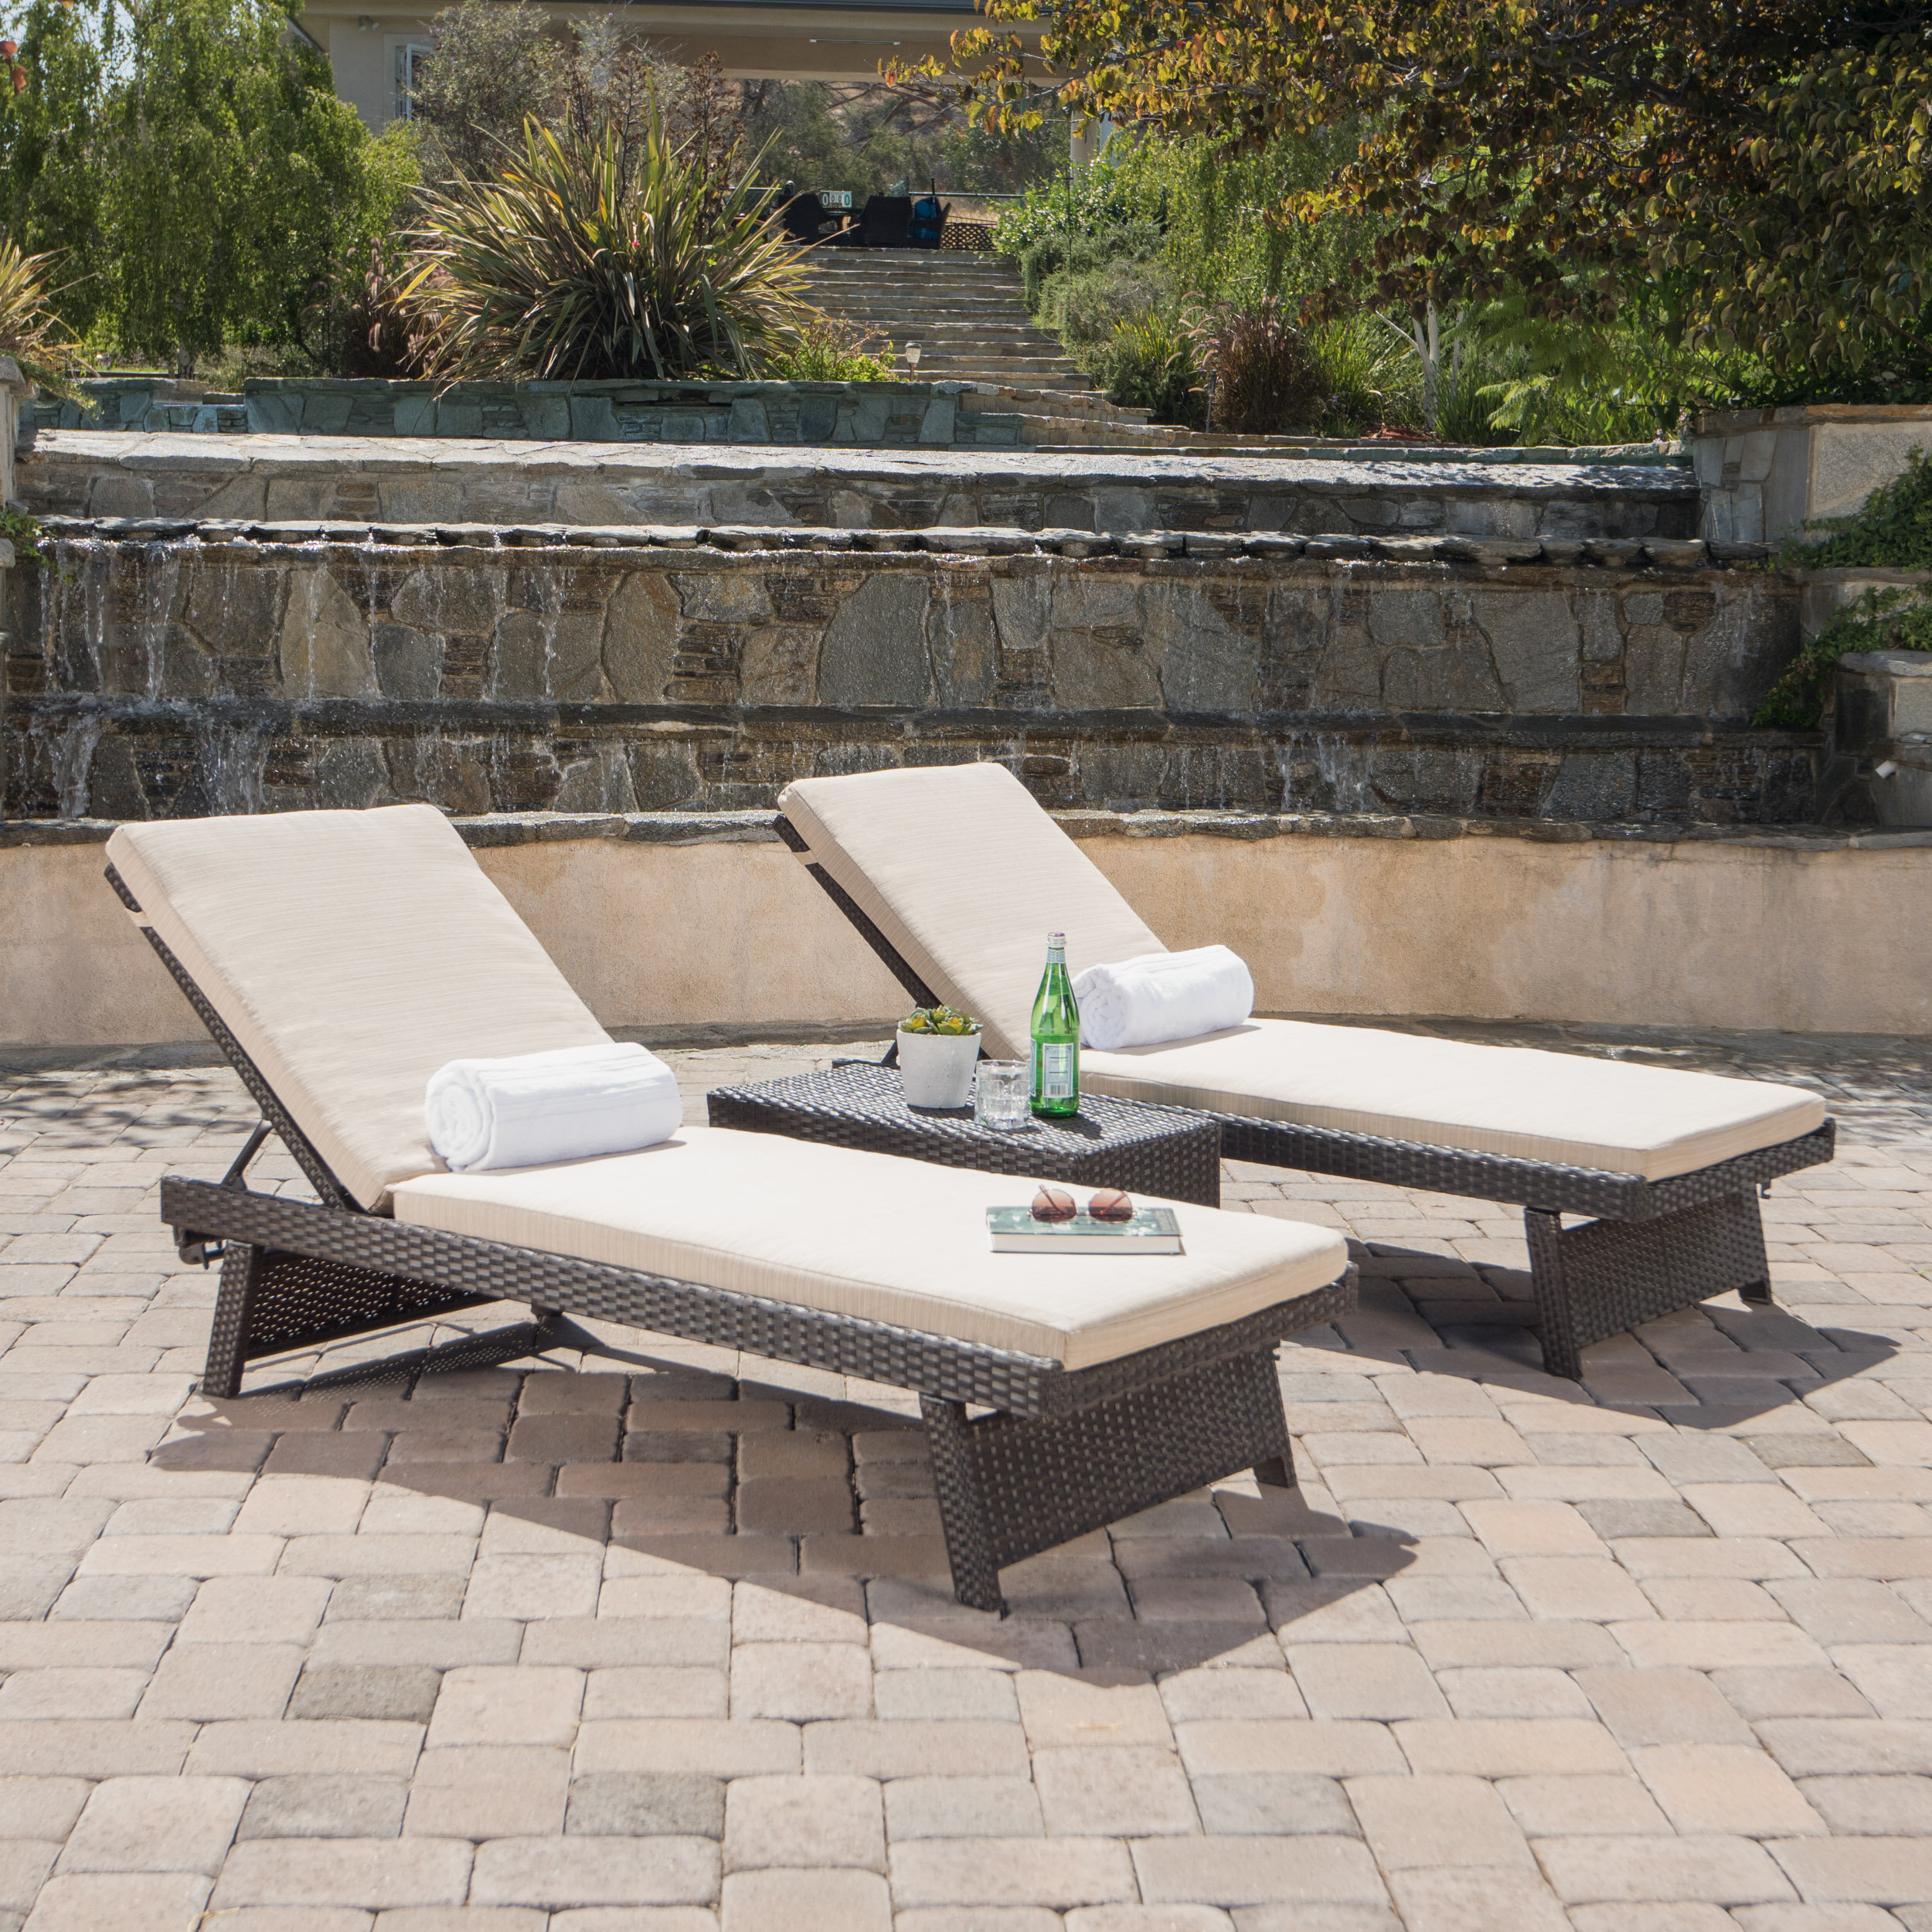 Shore Alumunium Outdoor 3 Piece Chaise Lounger Sets Throughout Fashionable Wenzel 3 Piece Chaise Lounge Set (View 18 of 25)